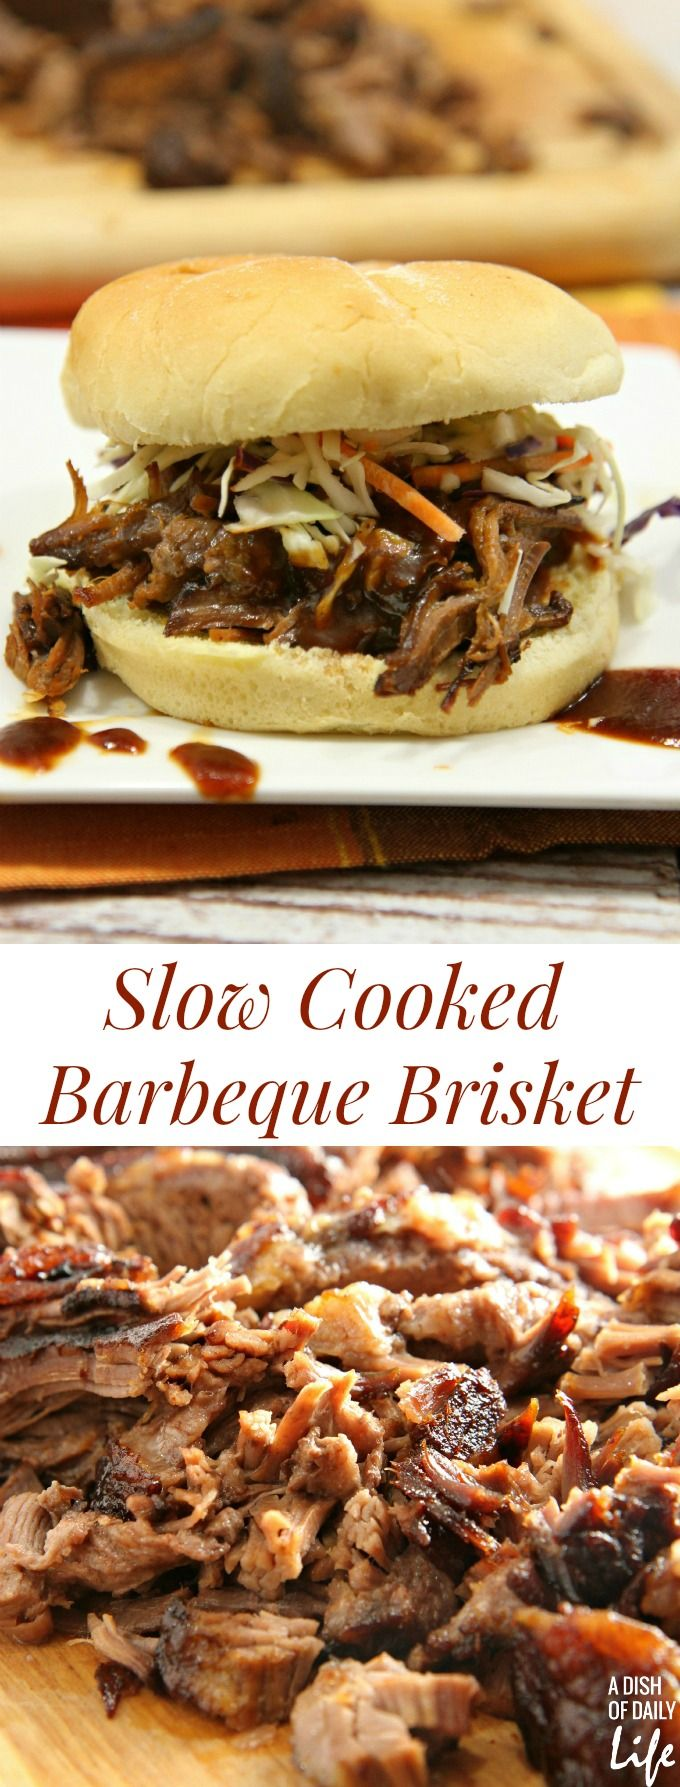 This mouthwatering Slow Cooked Barbeque Brisket recipe is a new family favorite. 10 minutes of prep time and just pop it in the oven to slow roast to perfection! Perfect easy weeknight meal or game day food! #TriplePFeature